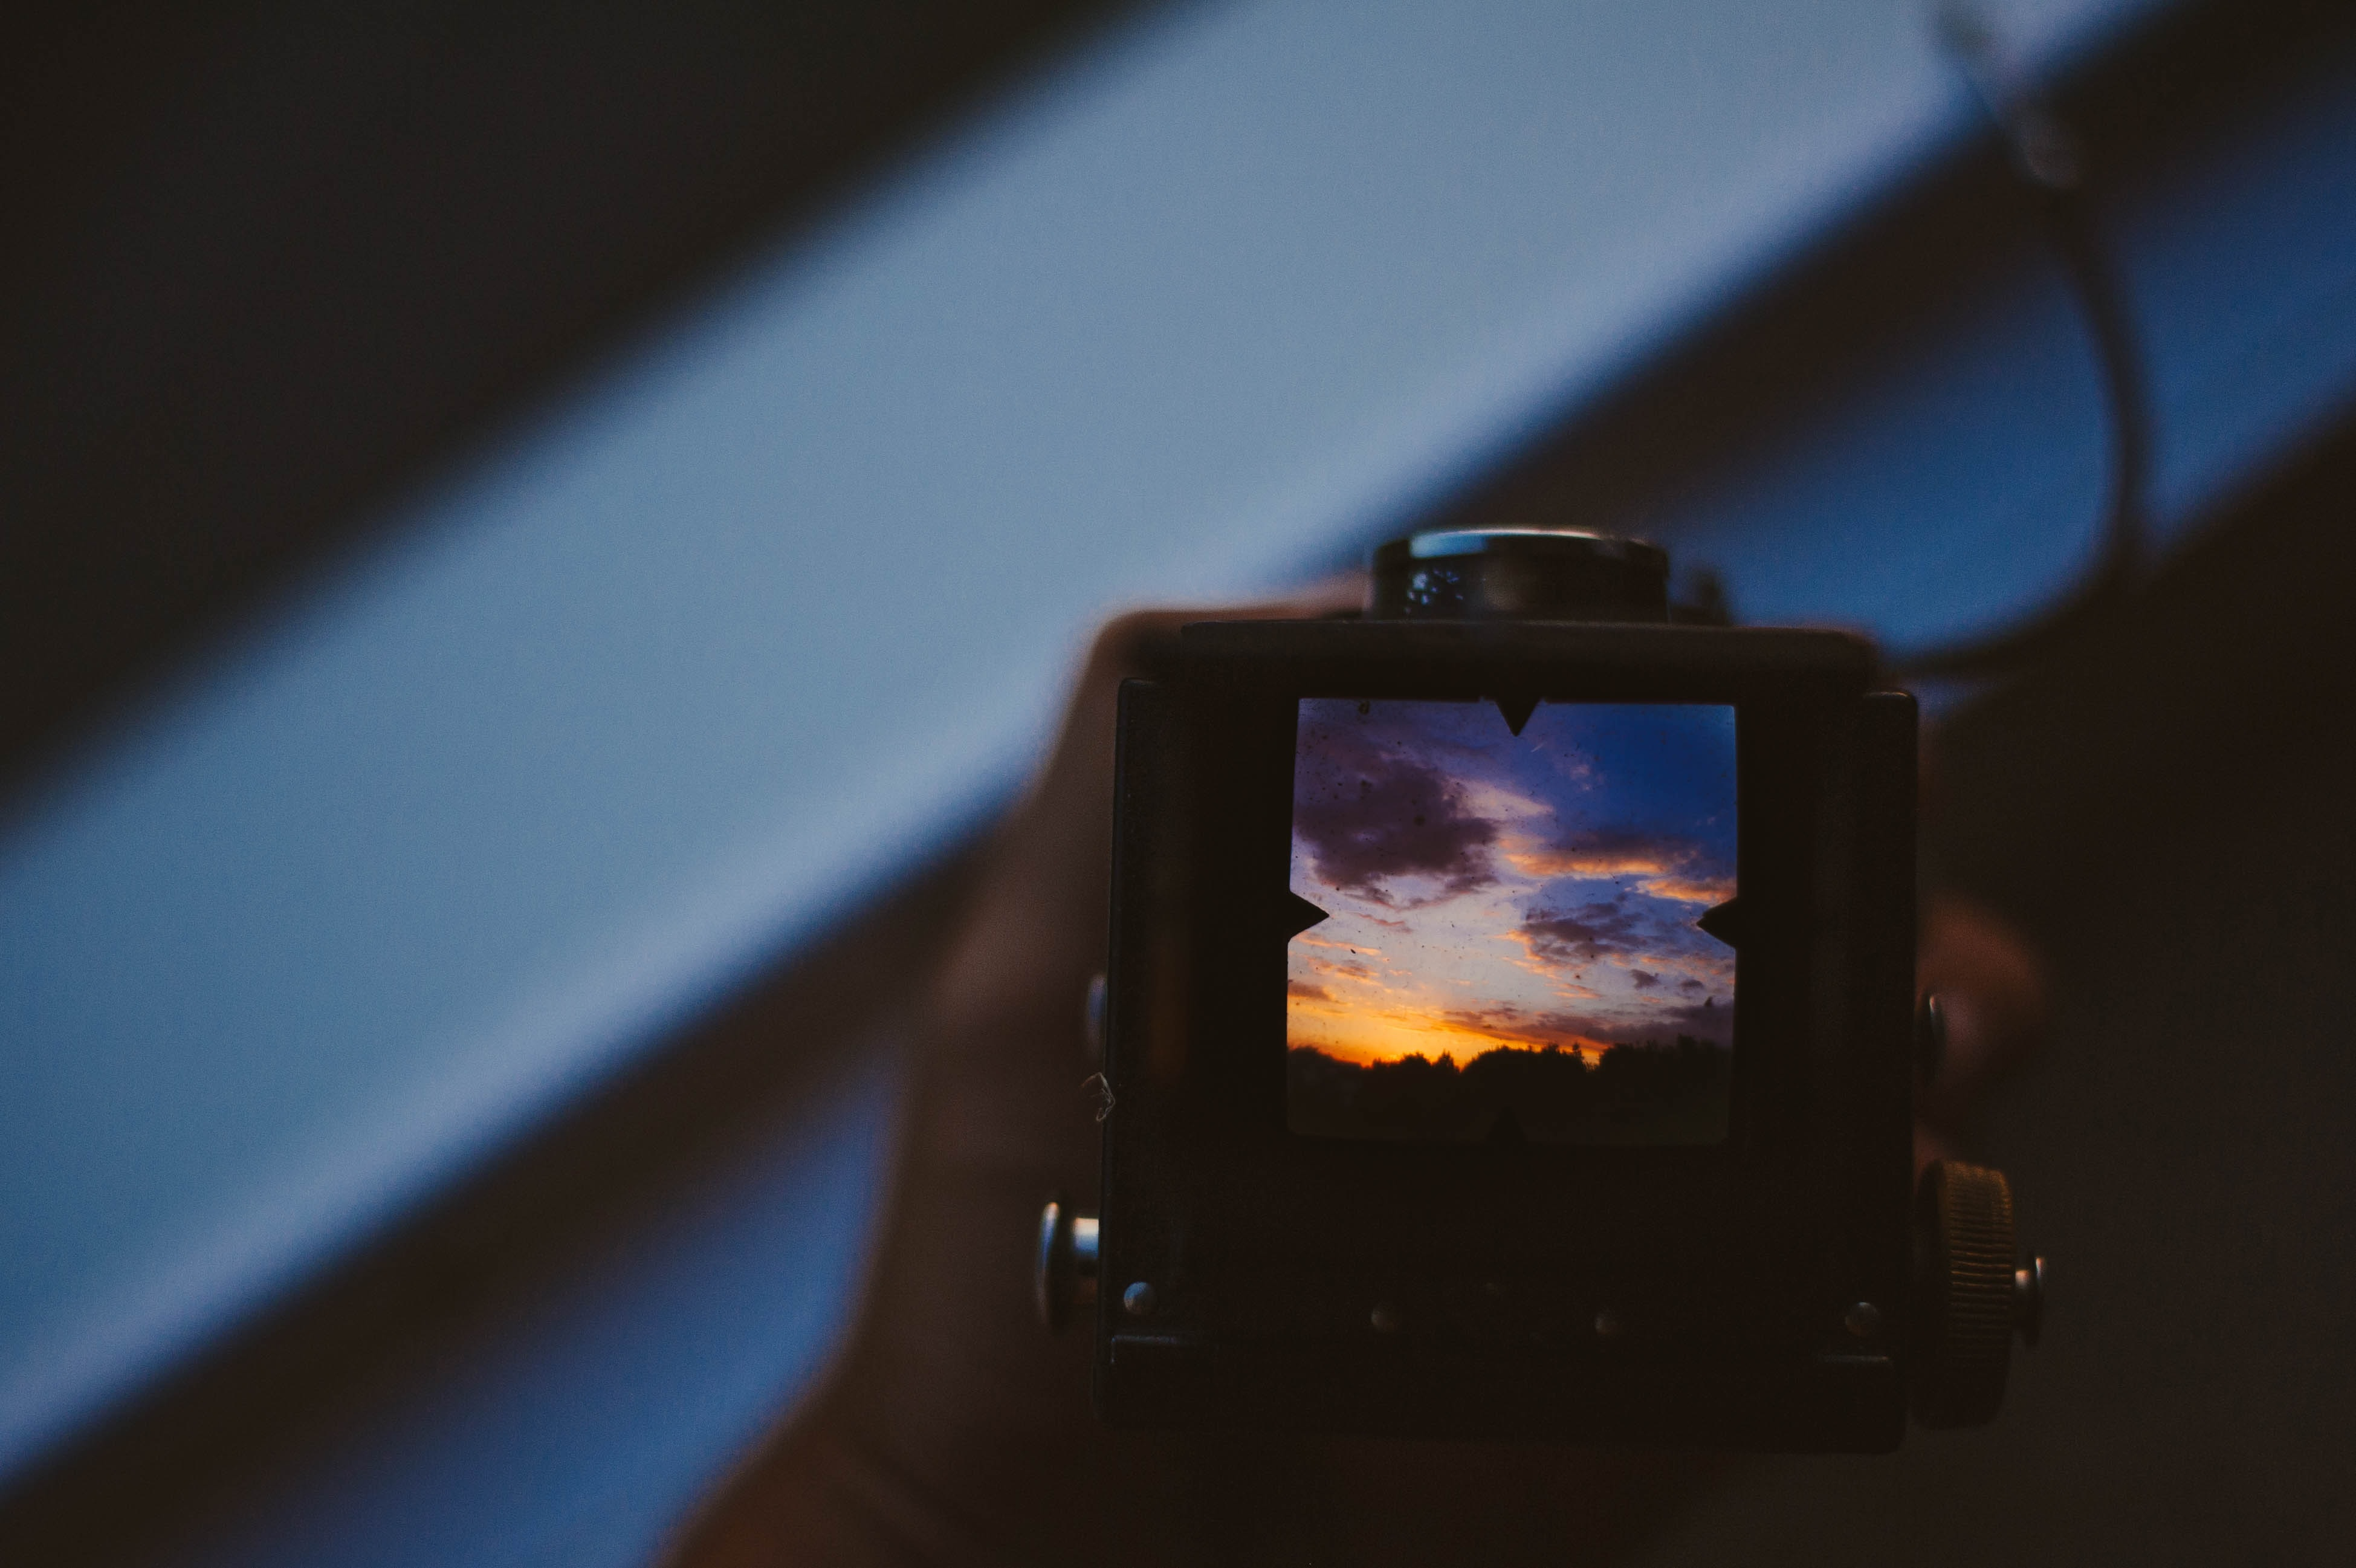 A view from behind a vintage camera toward the viewfinder that displays a yellow and blue sunset sky